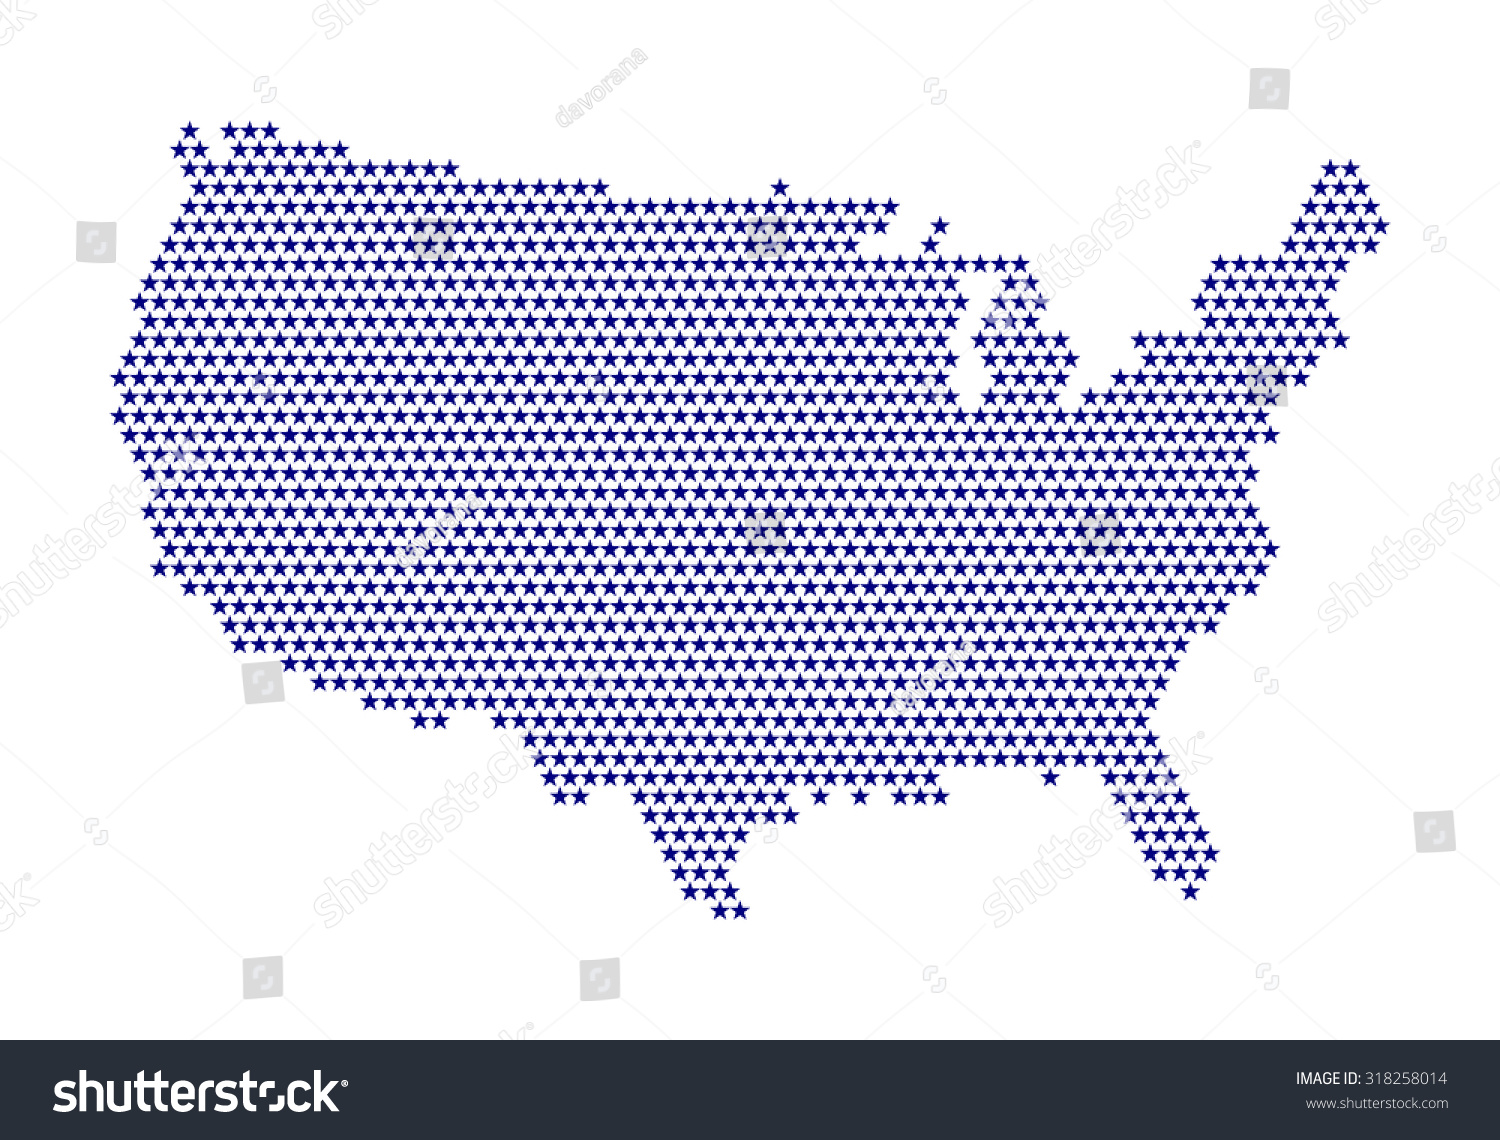 Color online us map - World And Usa Maps For Sale Buy Maps Mapscom Map Of The Usa Usa Maps